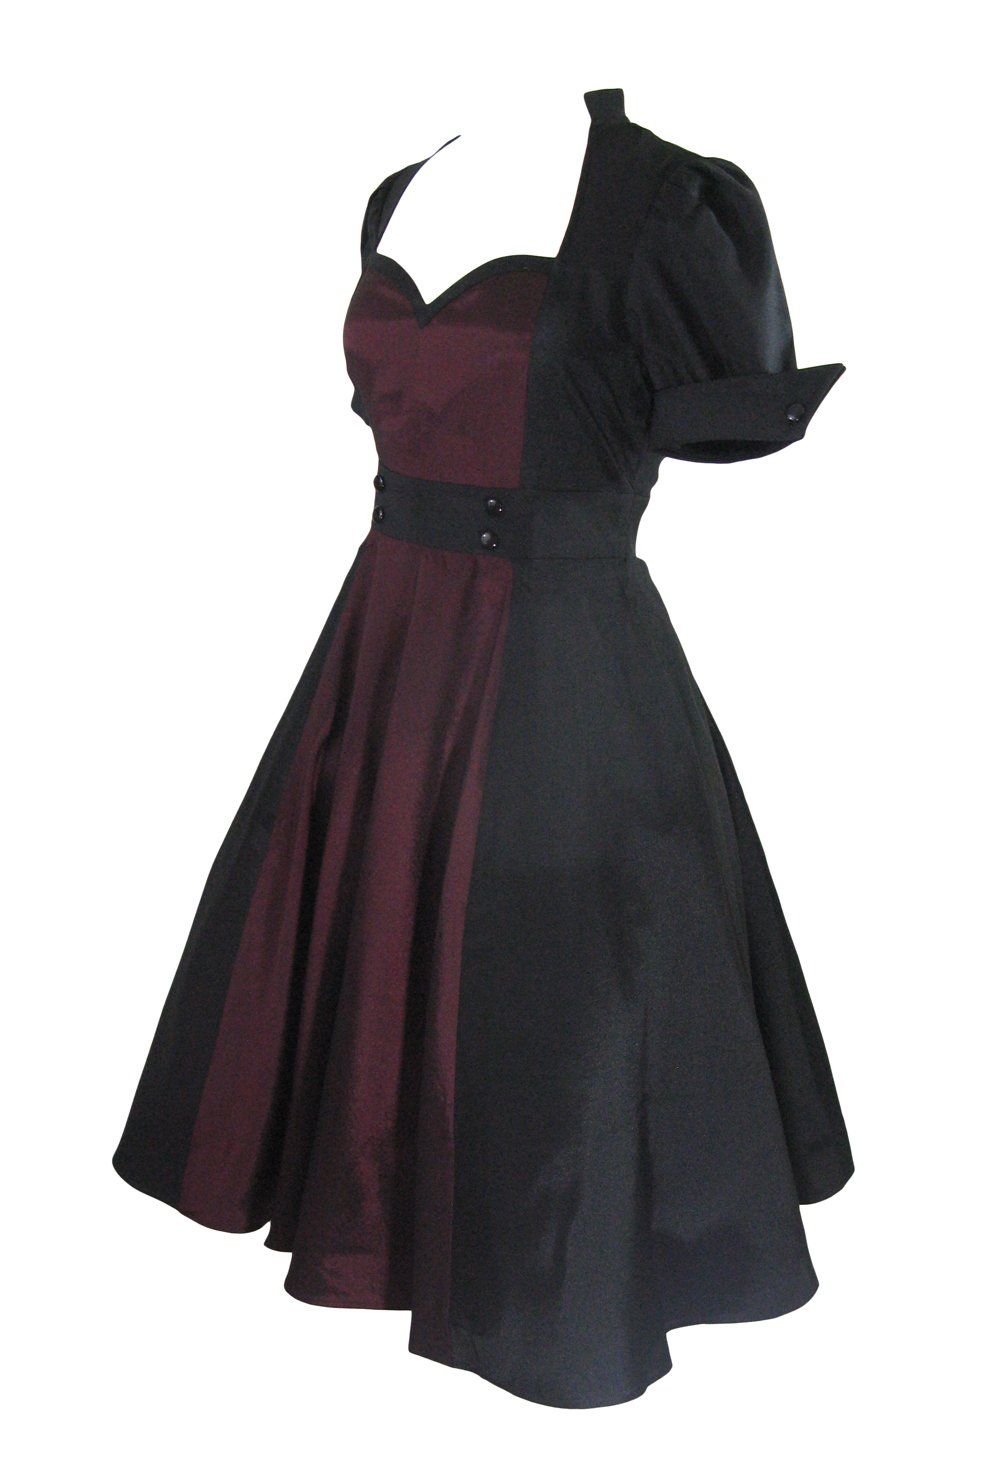 Plus size vintage 60s queen of hearts two tone black and burgundy plus size vintage 60s queen of hearts two tone black and burgundy satin dress 22w cute dresseslong prom ombrellifo Gallery